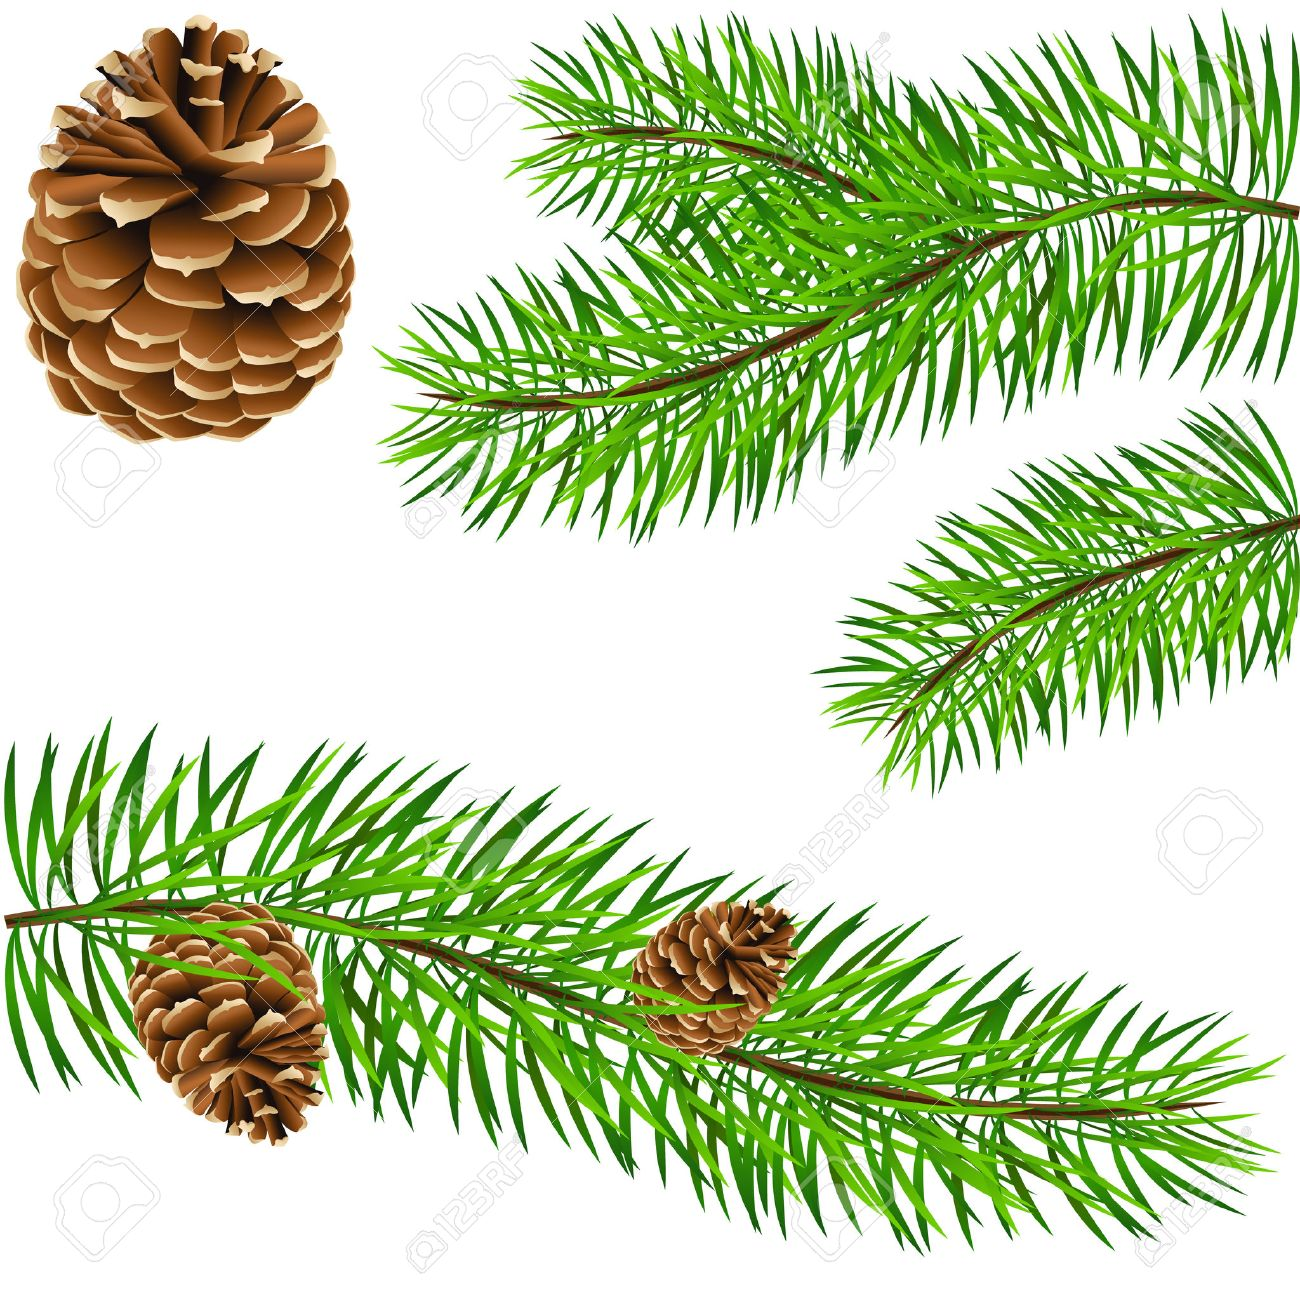 pinecone and pine branches Stock Vector - 8311707